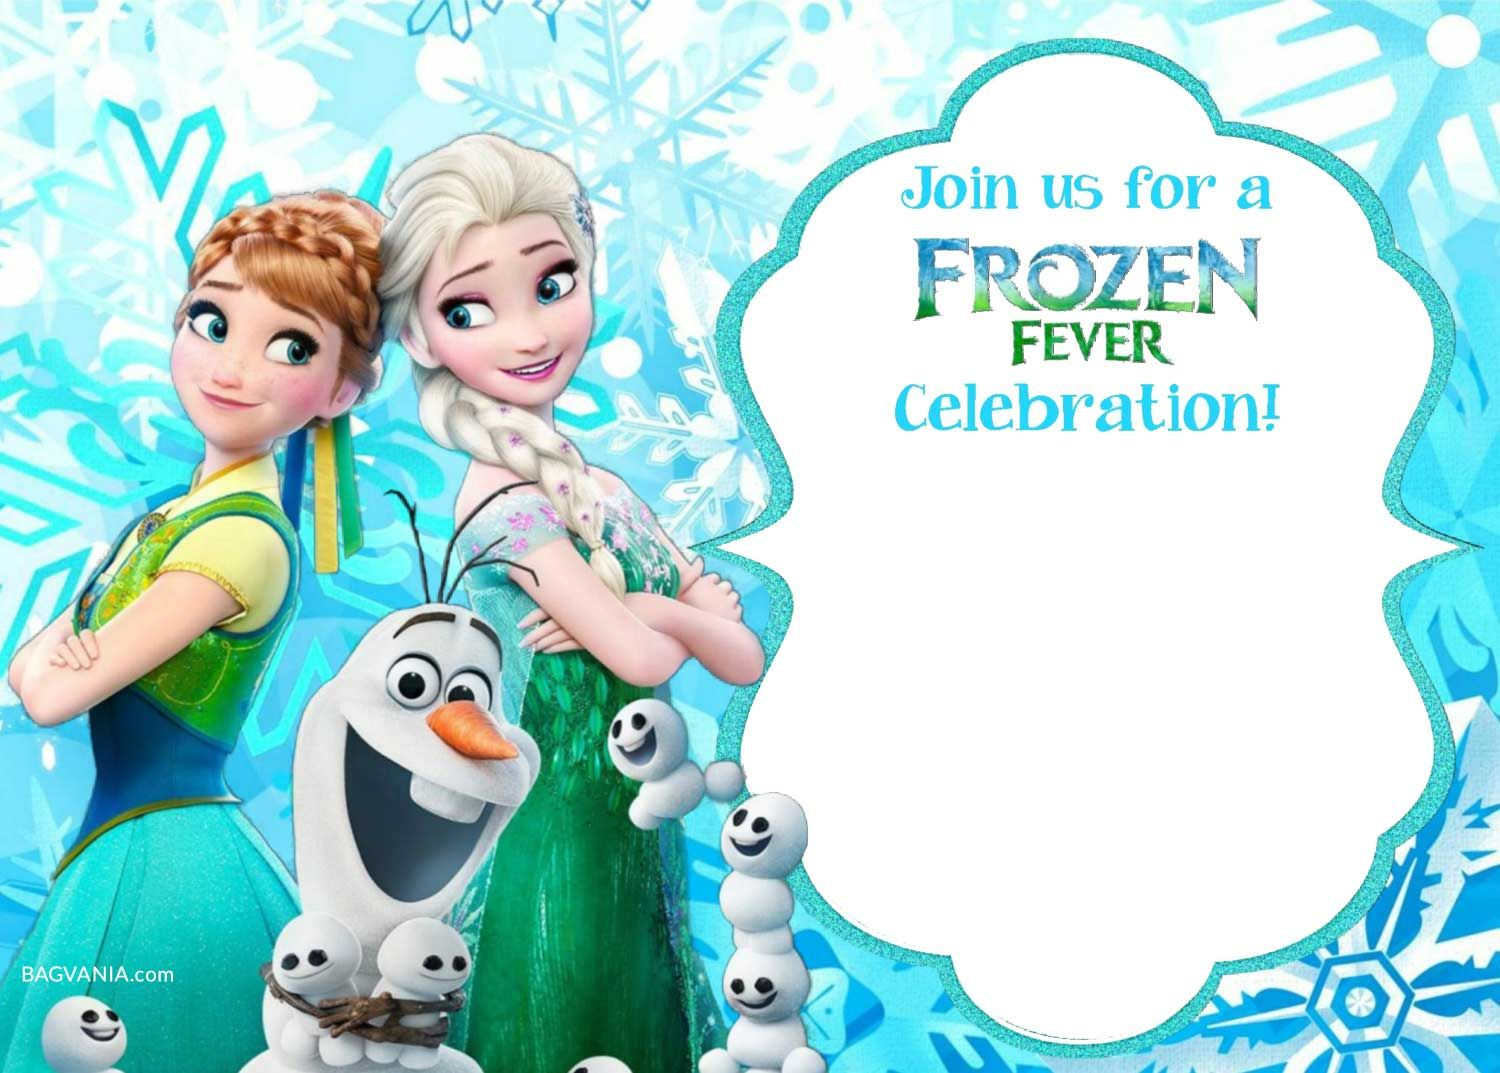 photograph regarding Frozen Printable Invitations named Free of charge Printable Frozen Invitation Templates Bagvania Cost-free